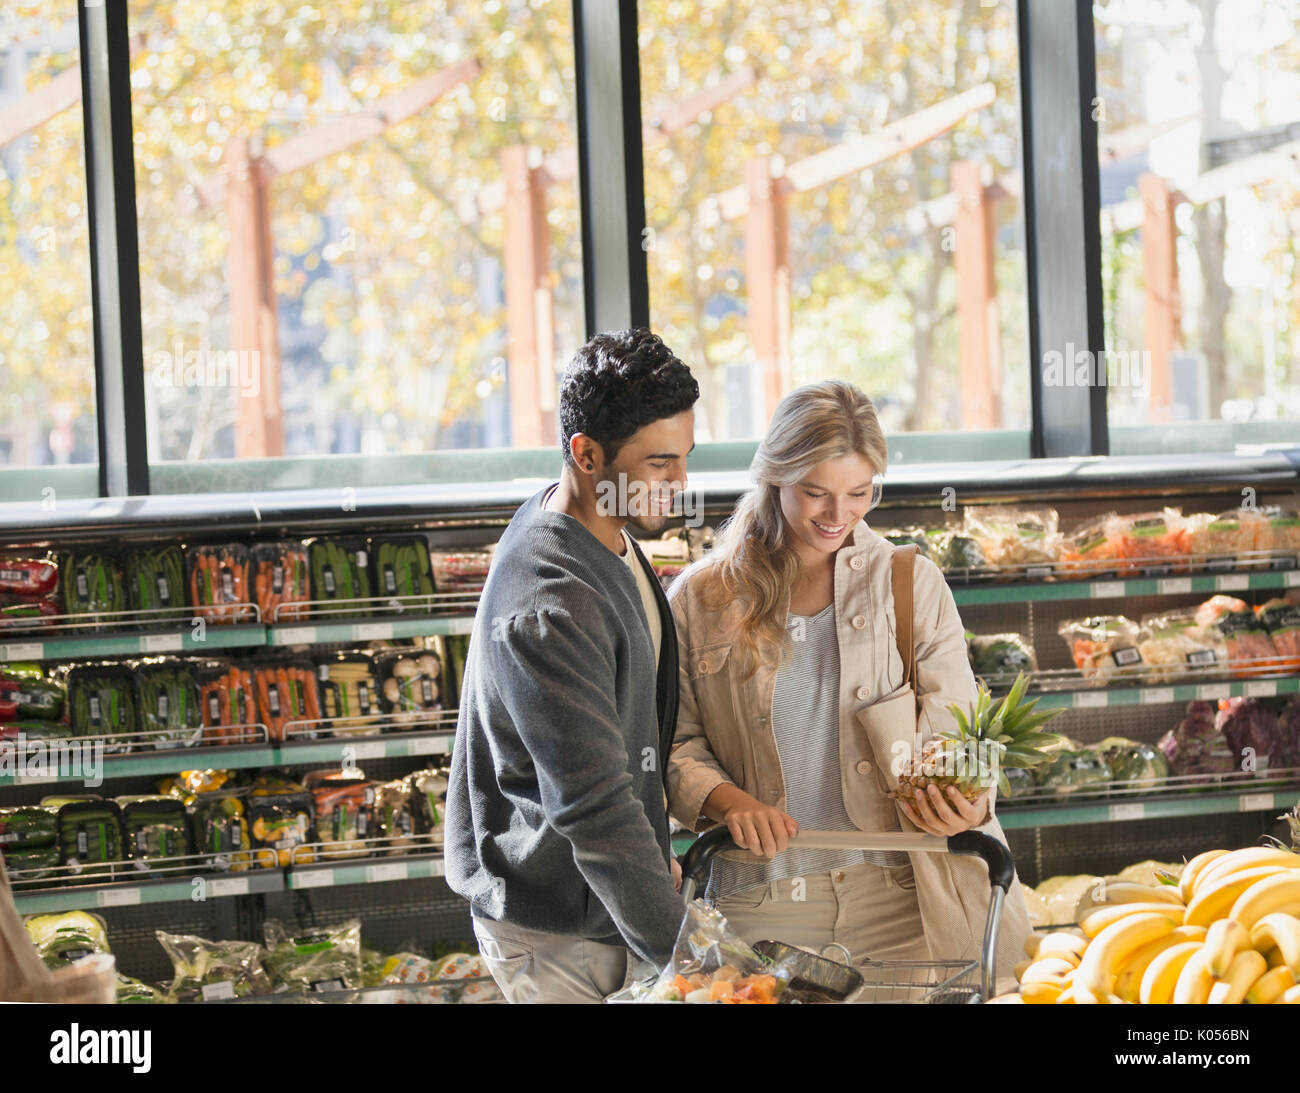 Smiling young couple grocery shopping, holding pineapple in market Stock Photo